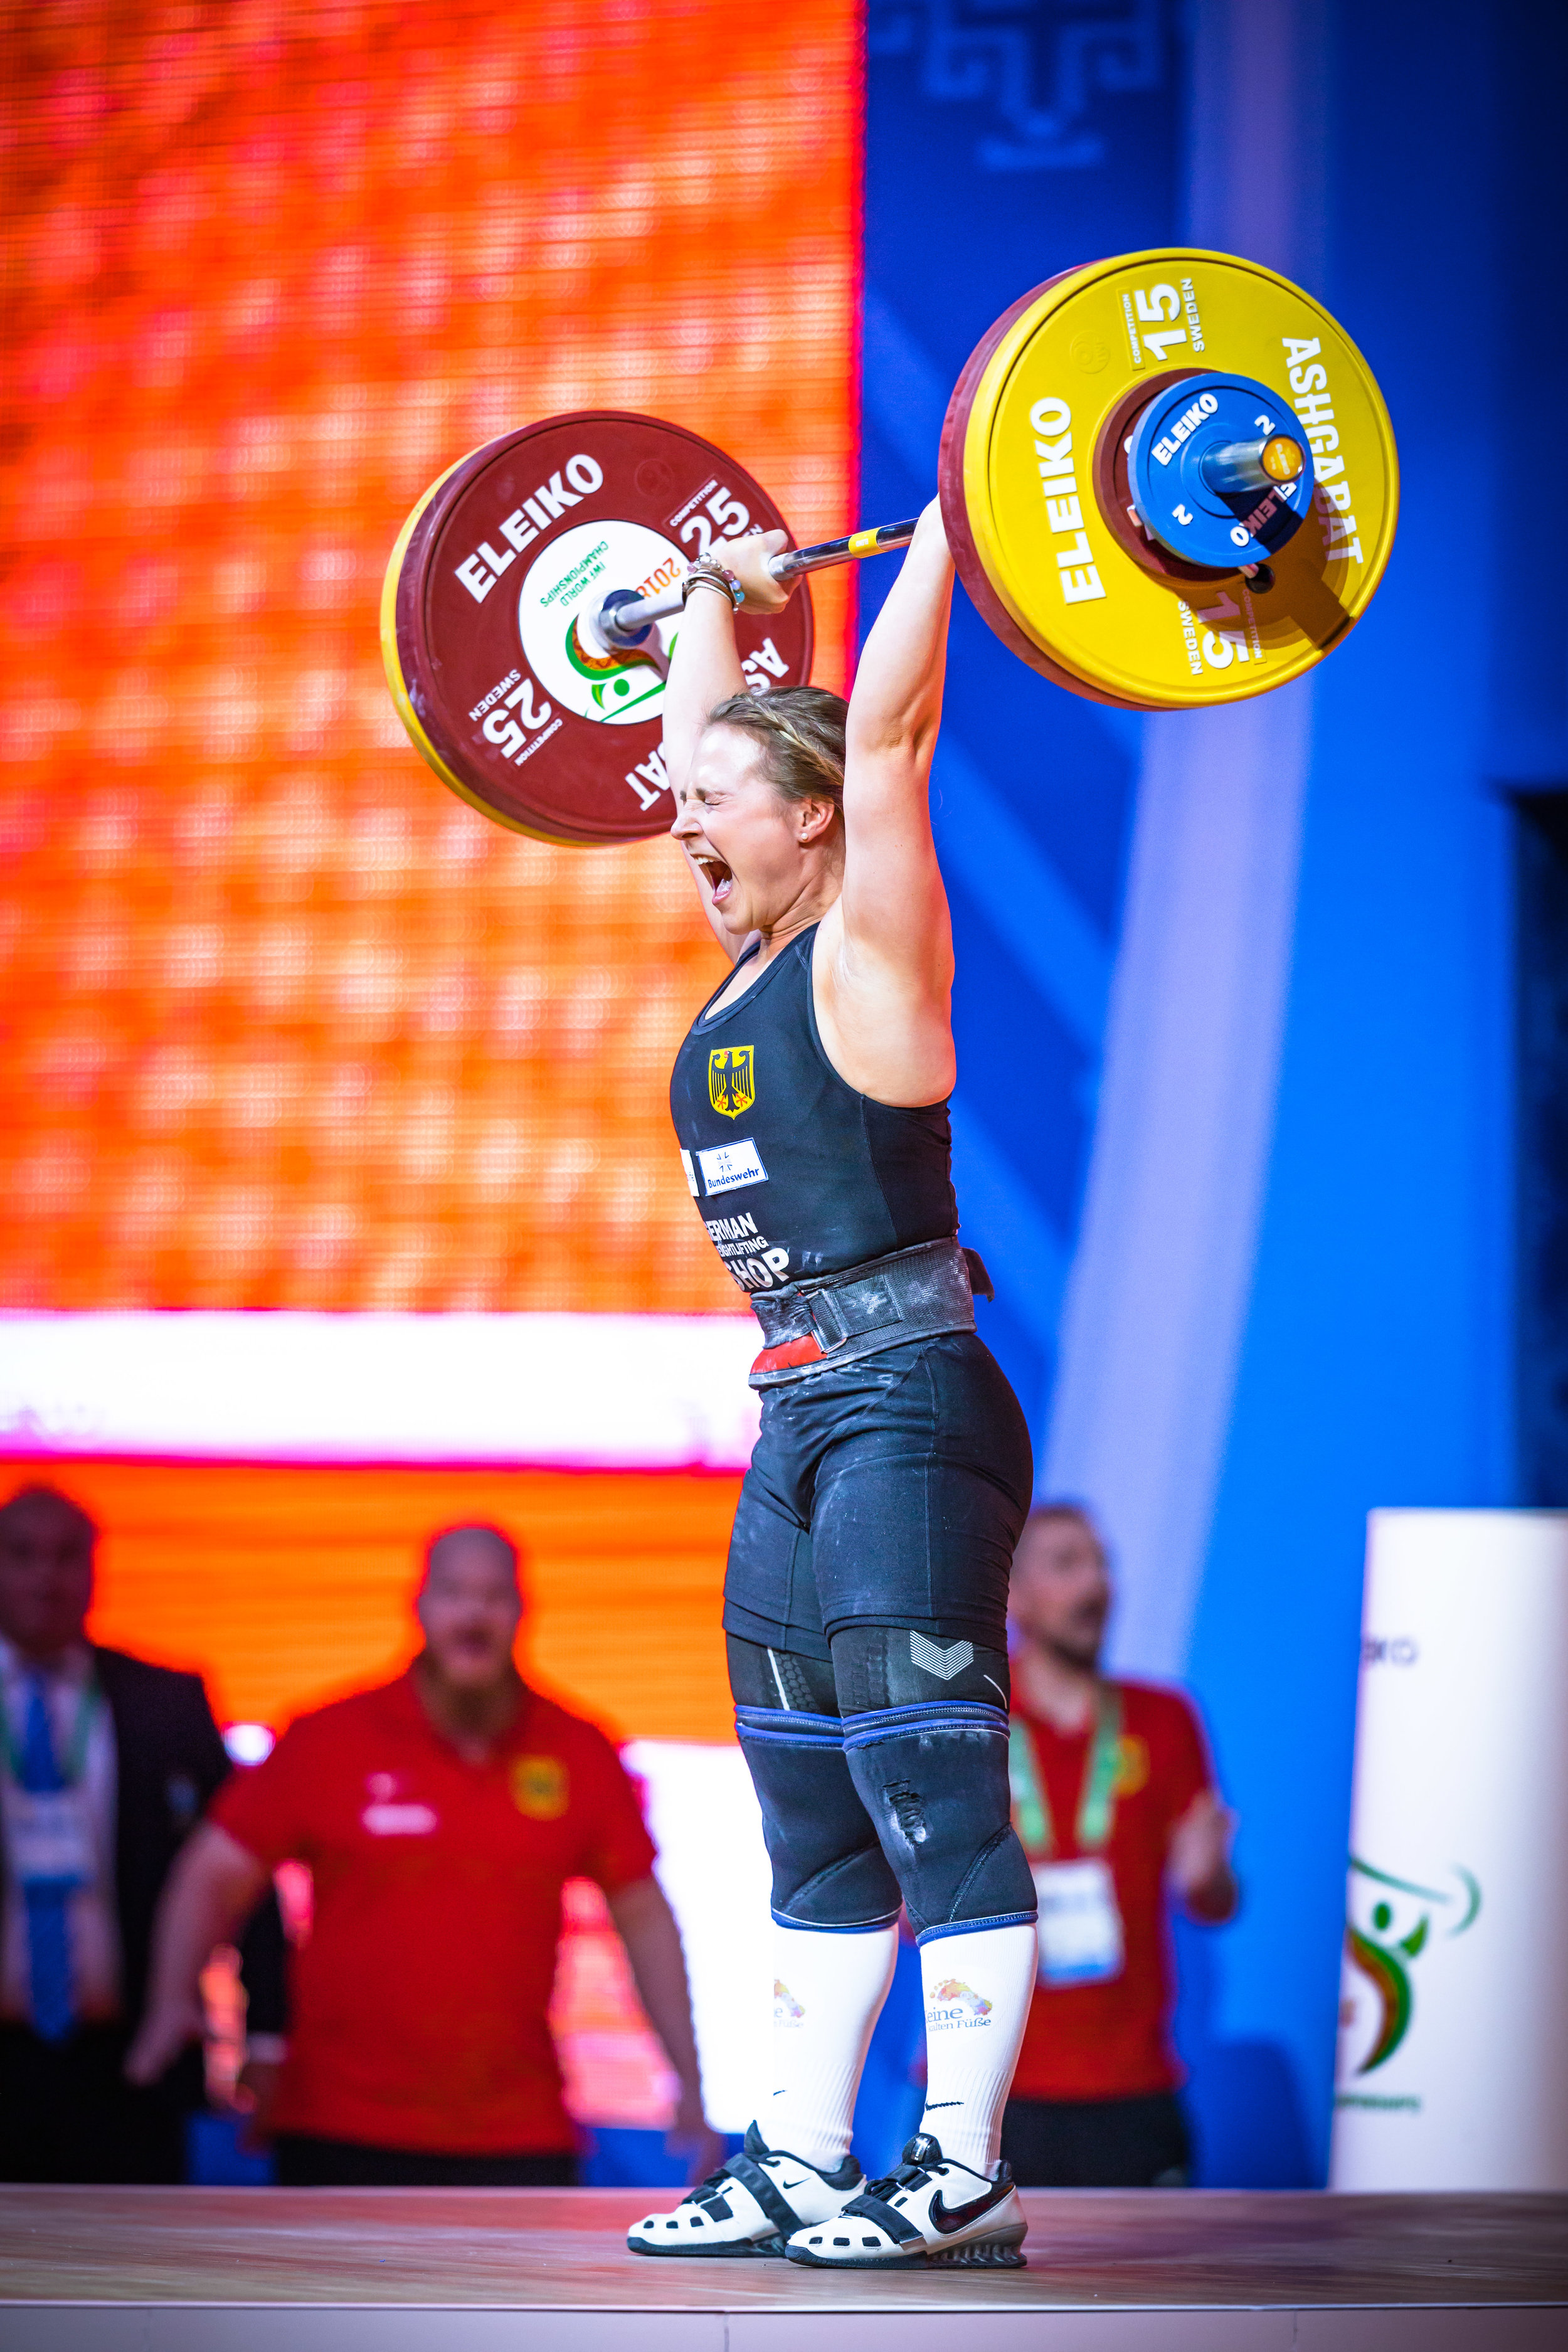 Move over Max and Jurgen- Sabine has stolen my heart. I received the most messages and questions about the women on the team. People were excited to see women from Germany competing.  Btw: What's on her socks? I wanted to know what it said. lol